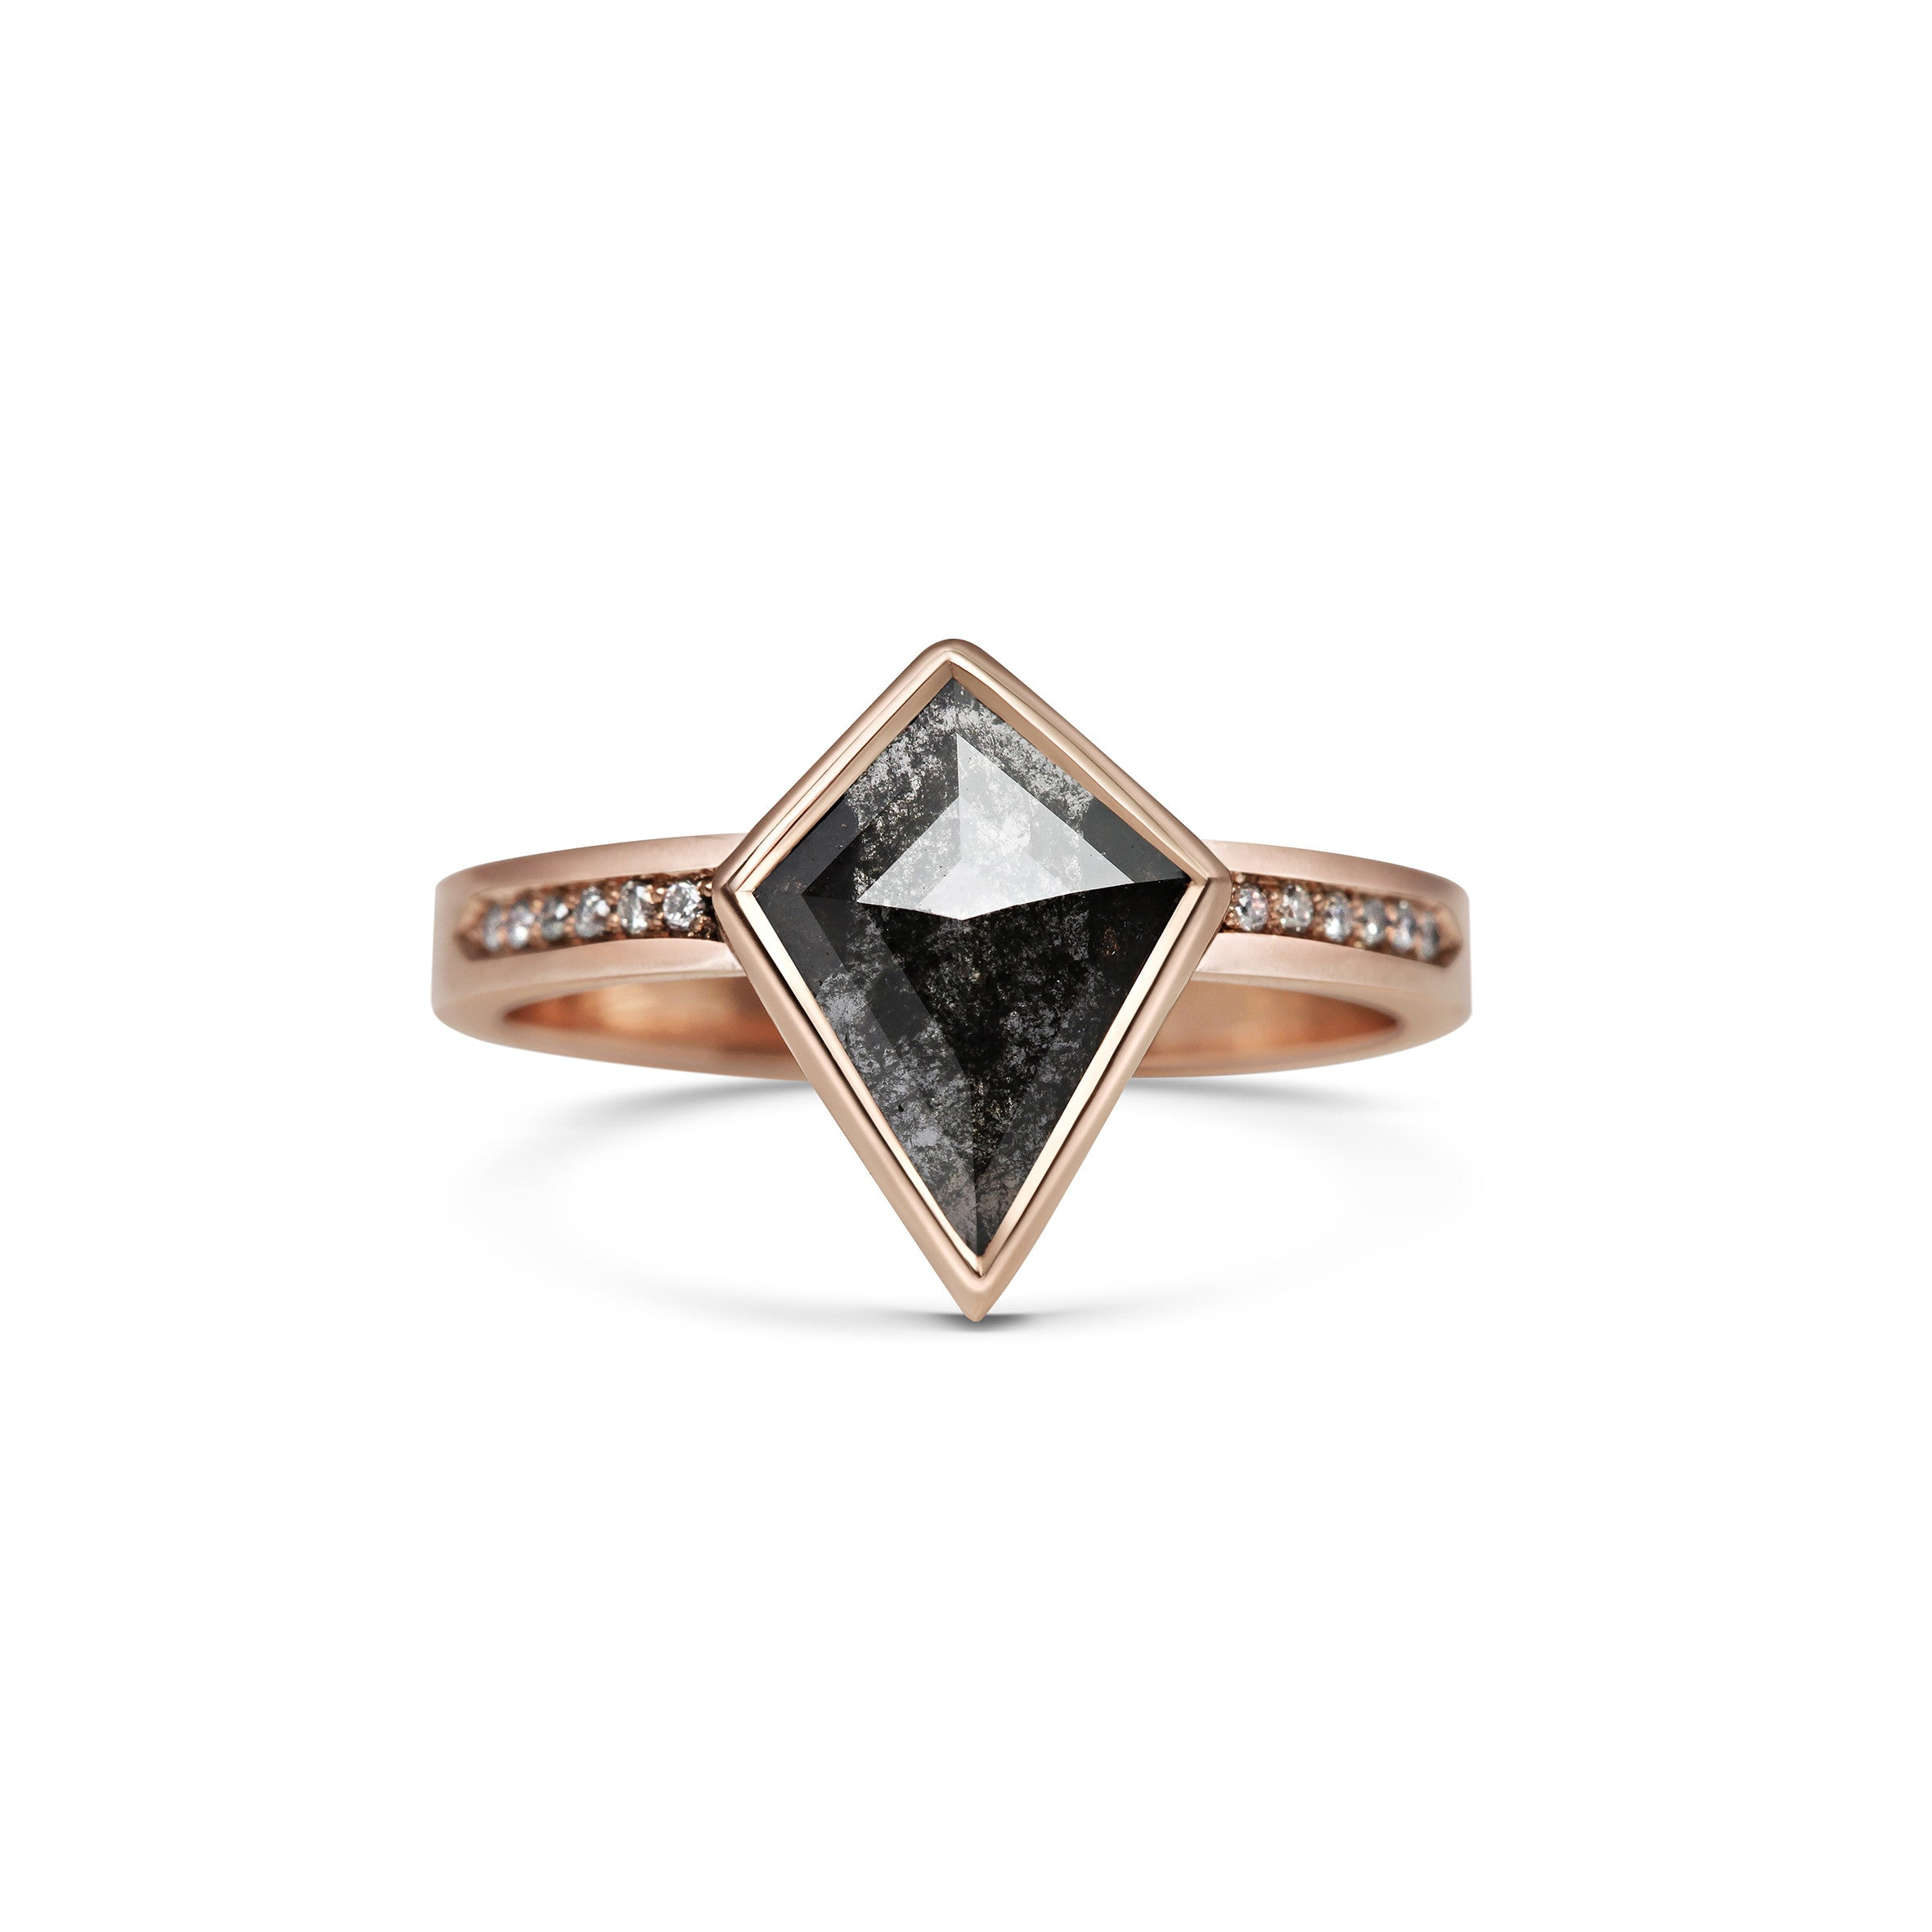 Black Included kite shape diamond slice in Rose Gold